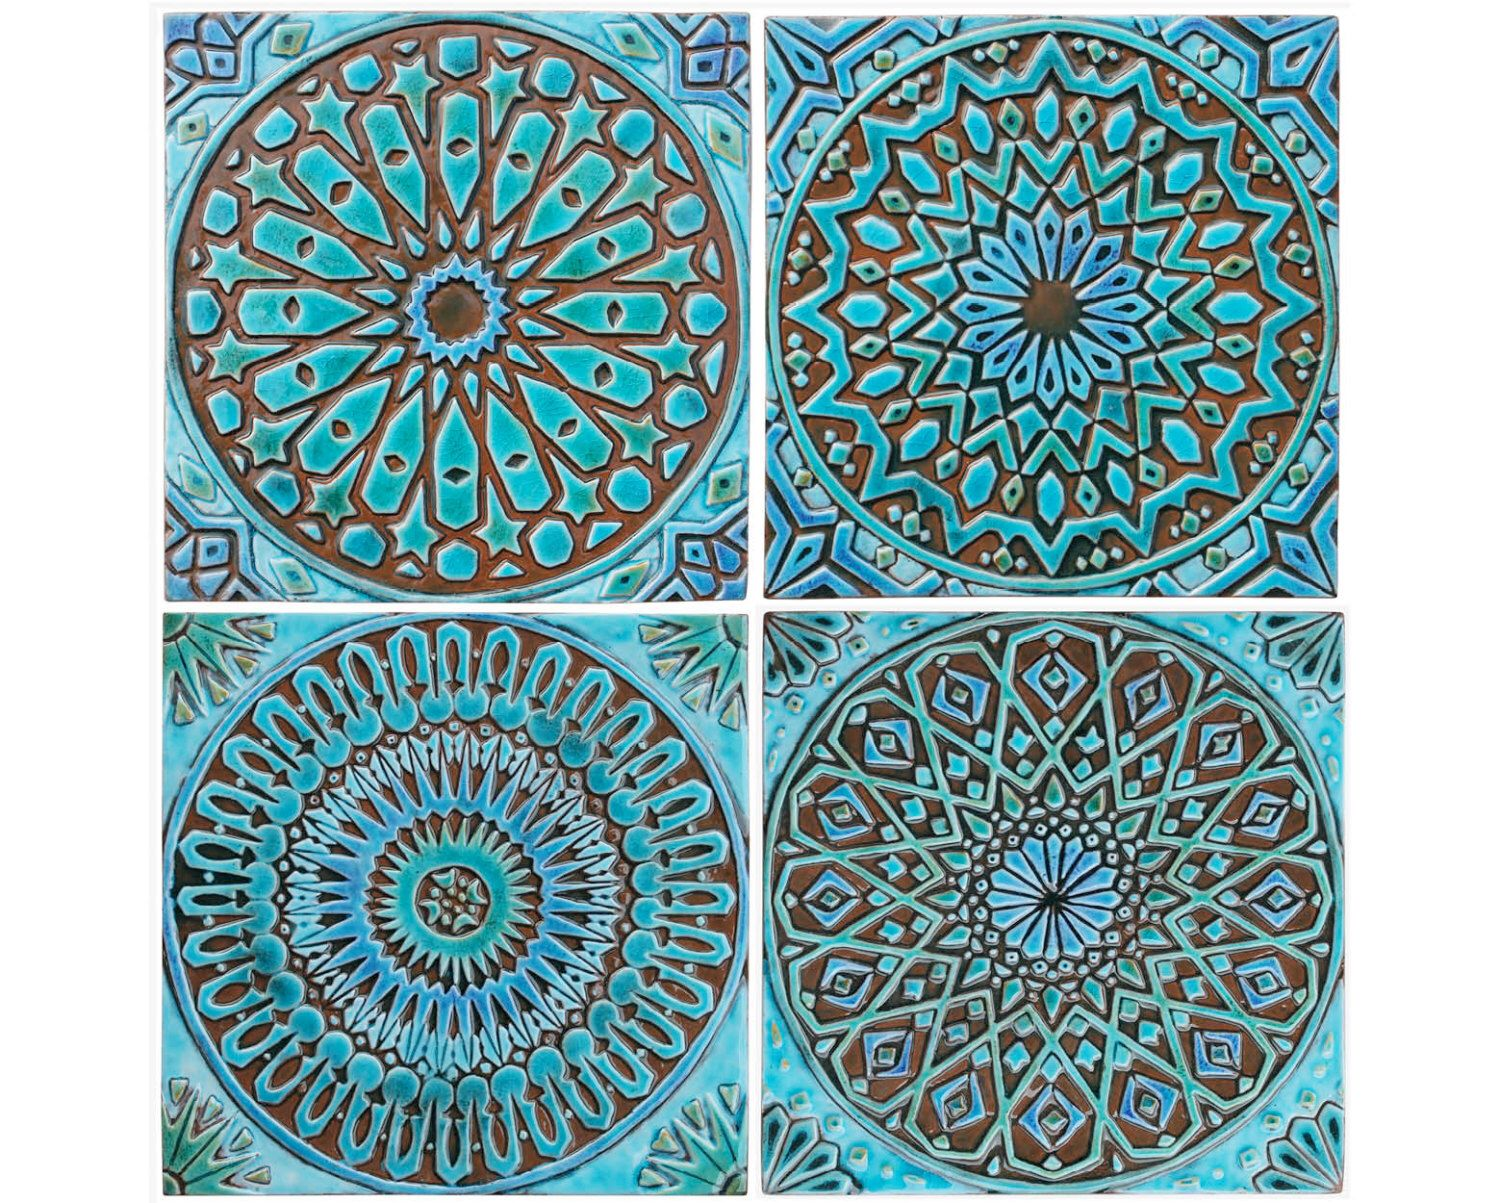 Moroccan inspired hand painted ceramic tiles for splashback or 4 moroccan wall hangings ceramic tiles wall decor wall art dailygadgetfo Image collections